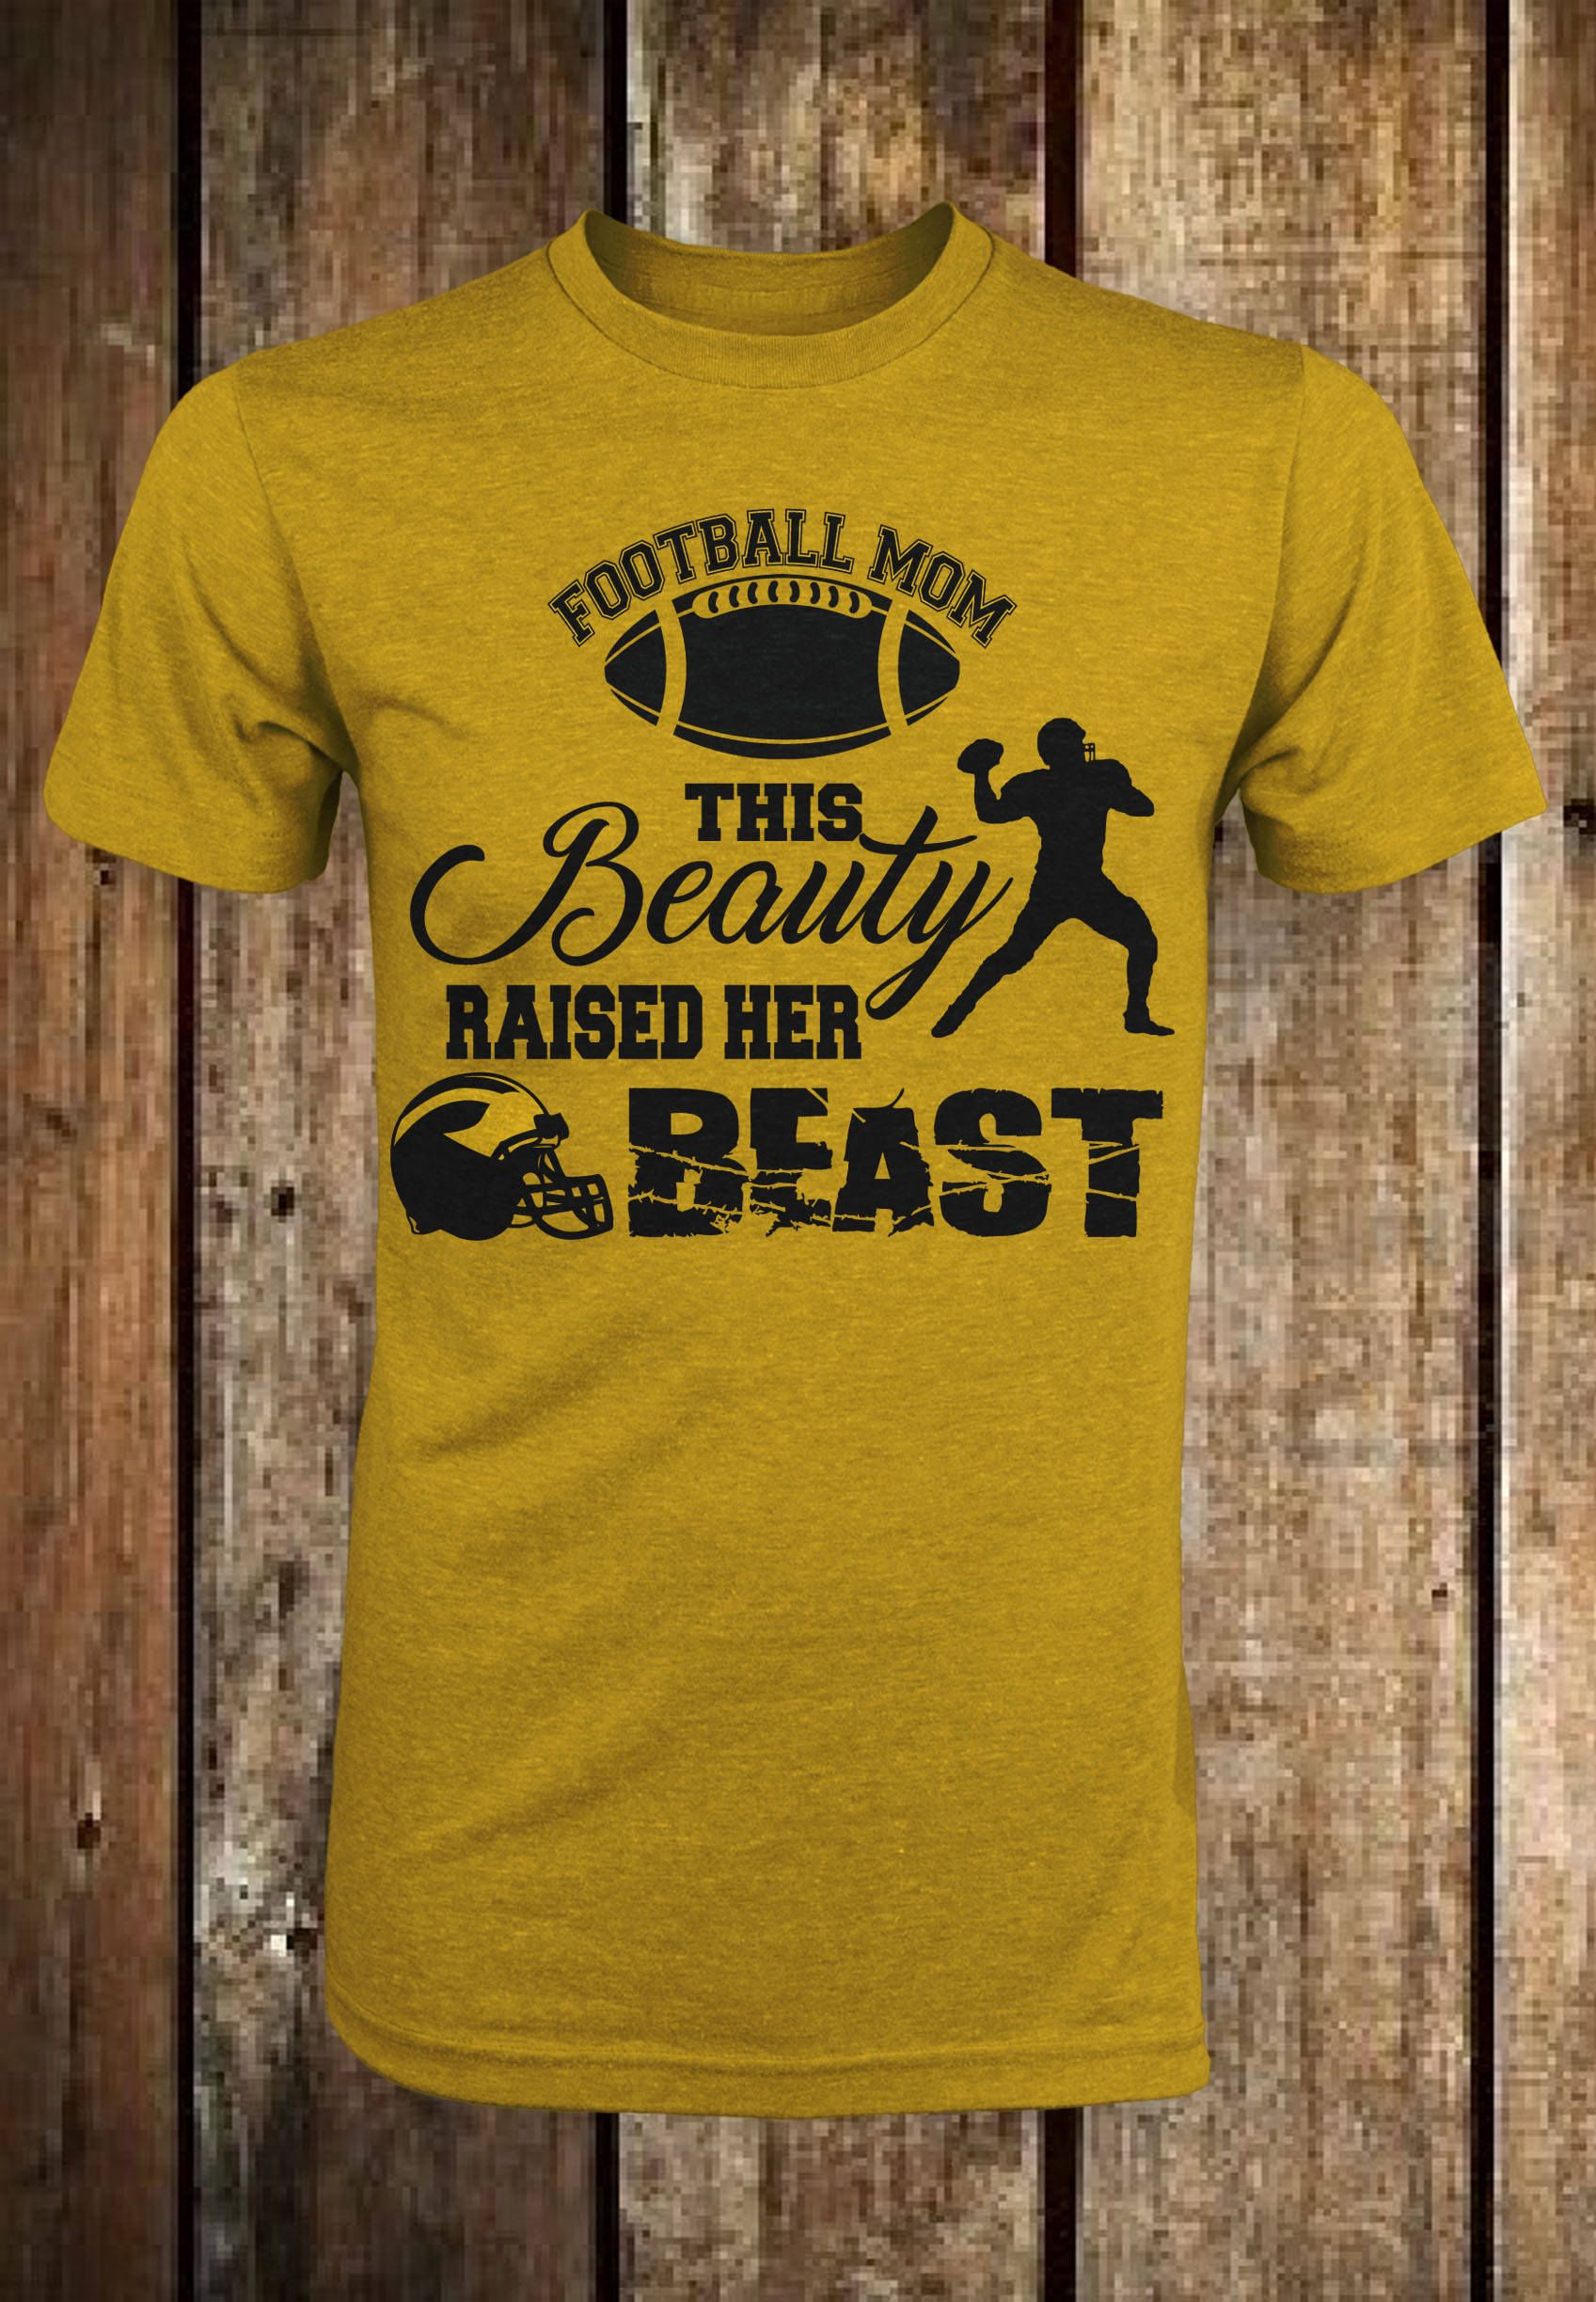 This Beauty Raised Her Beast (SVG) by TDZdesignz on Etsy